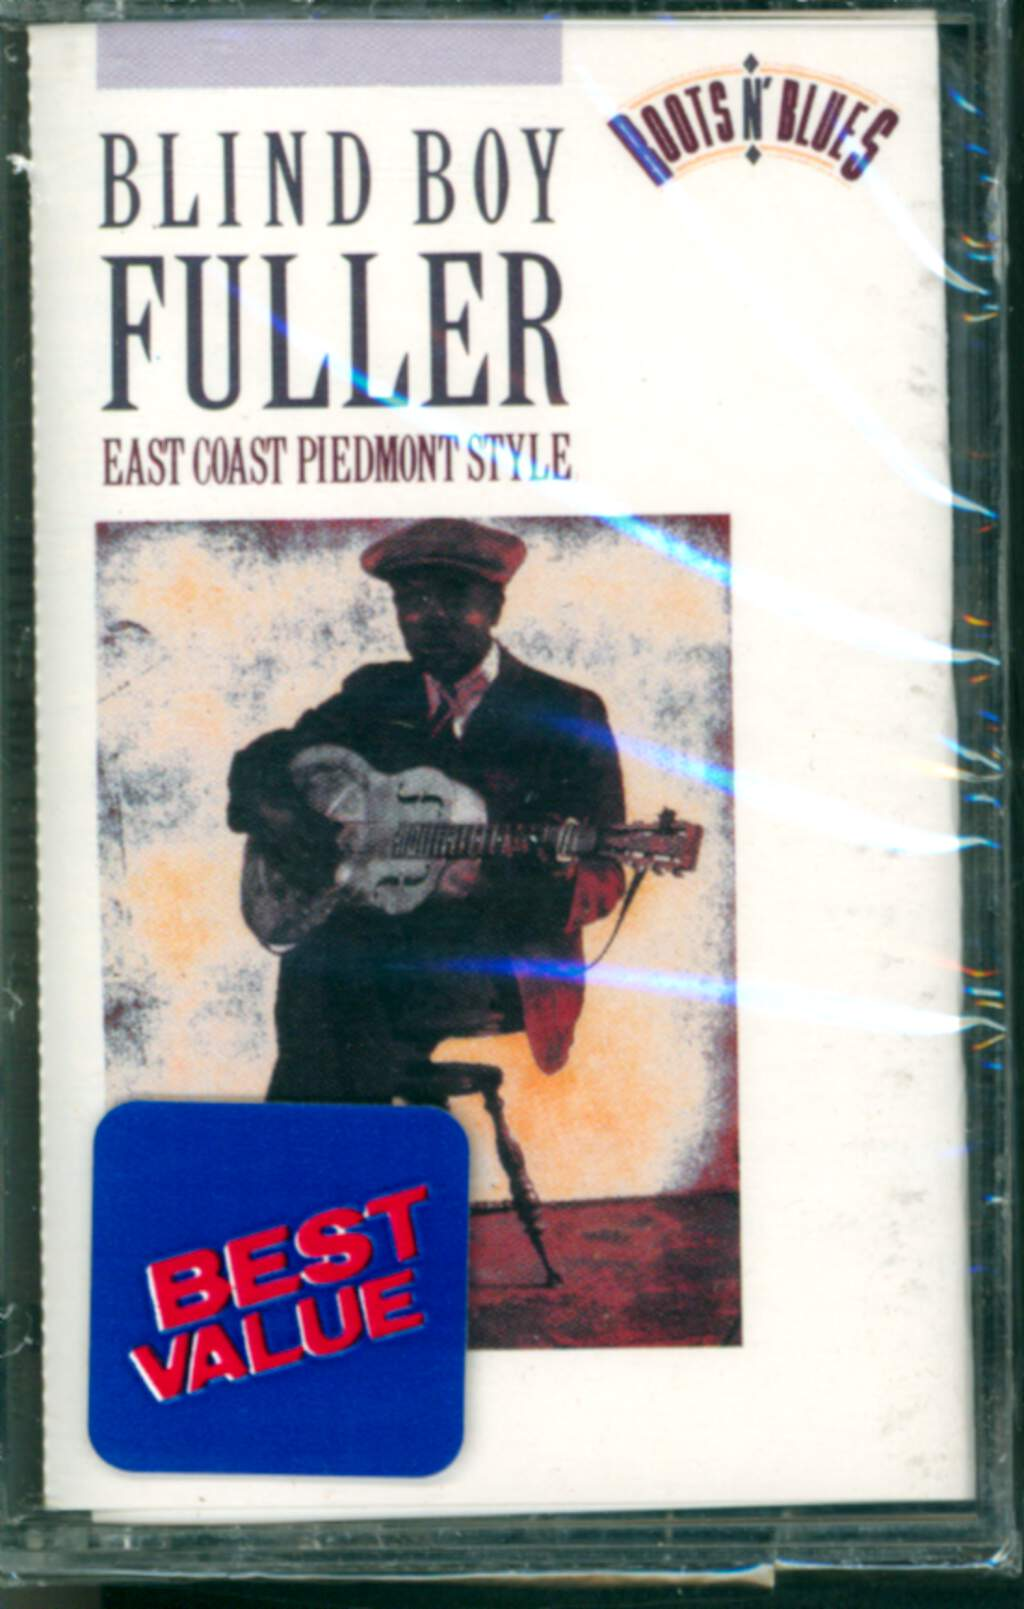 Blind Boy Fuller: East Coast Piedmont Style, Tape